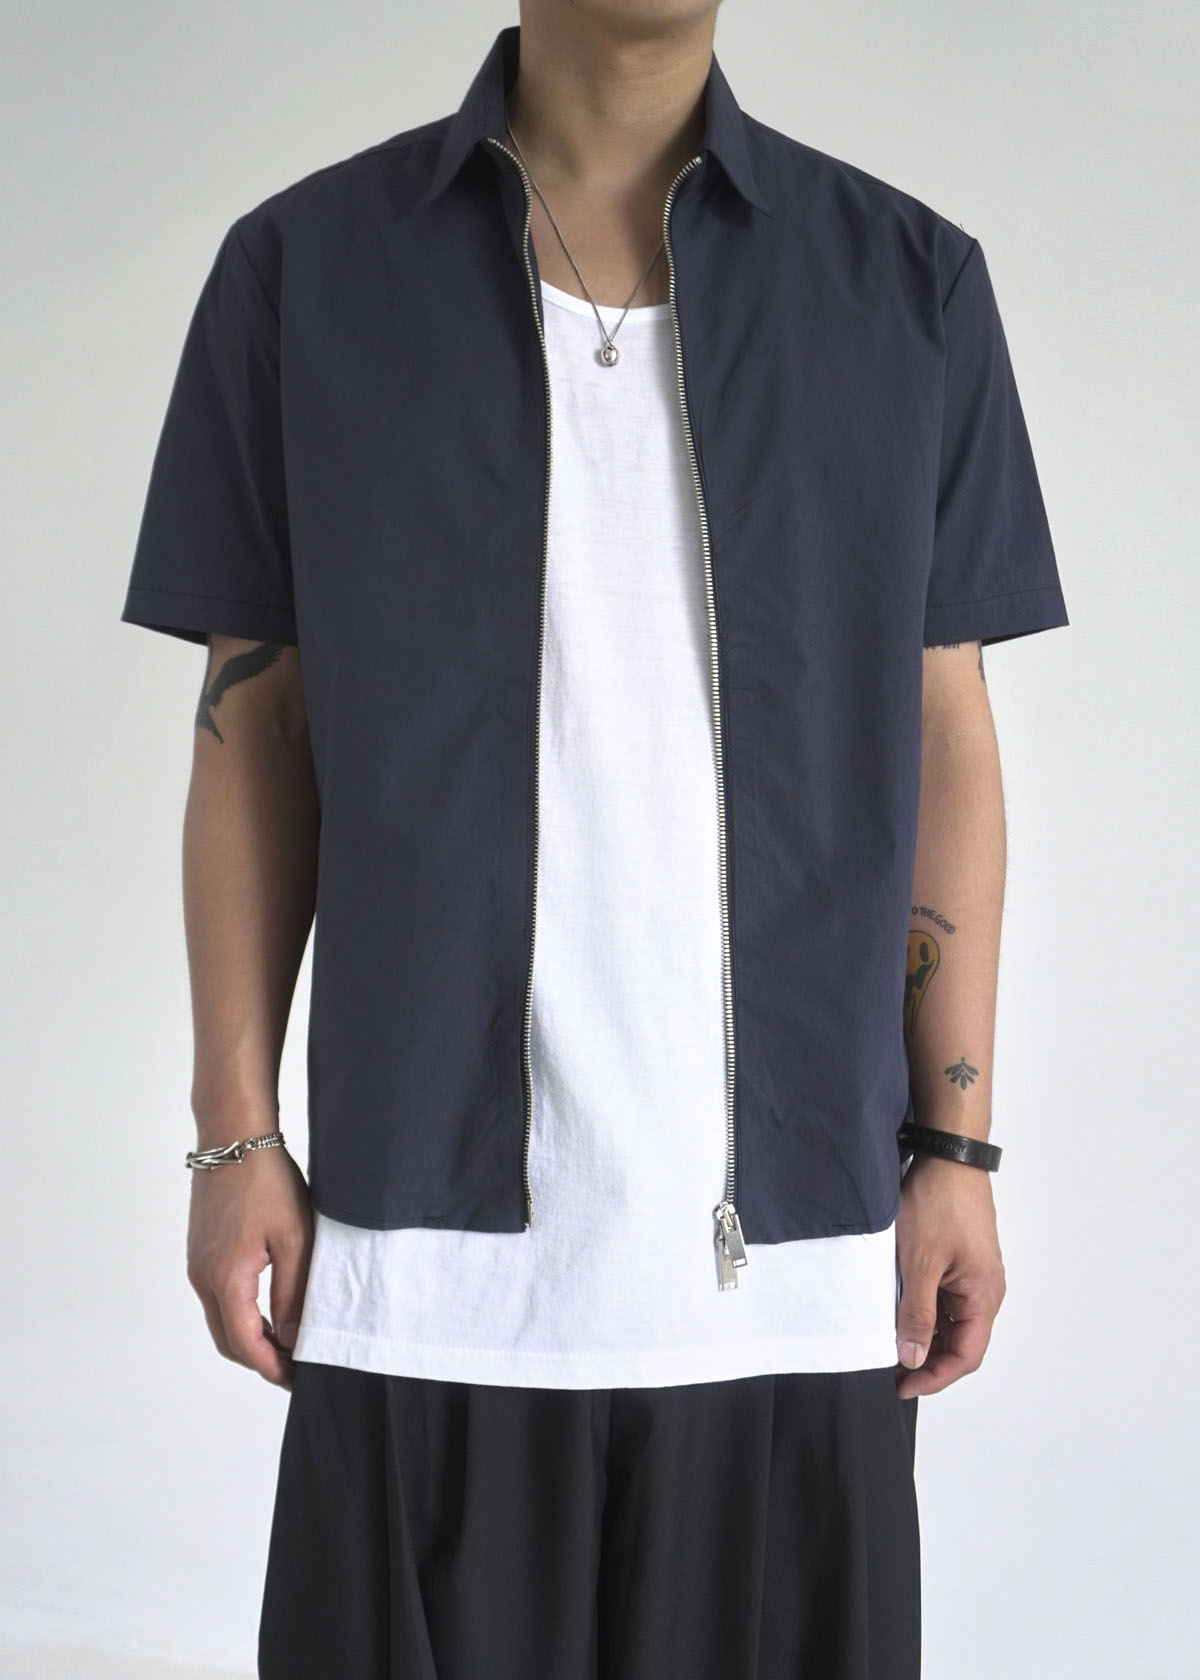 2Way Minimal Zip-up Half Shirts (2Color)